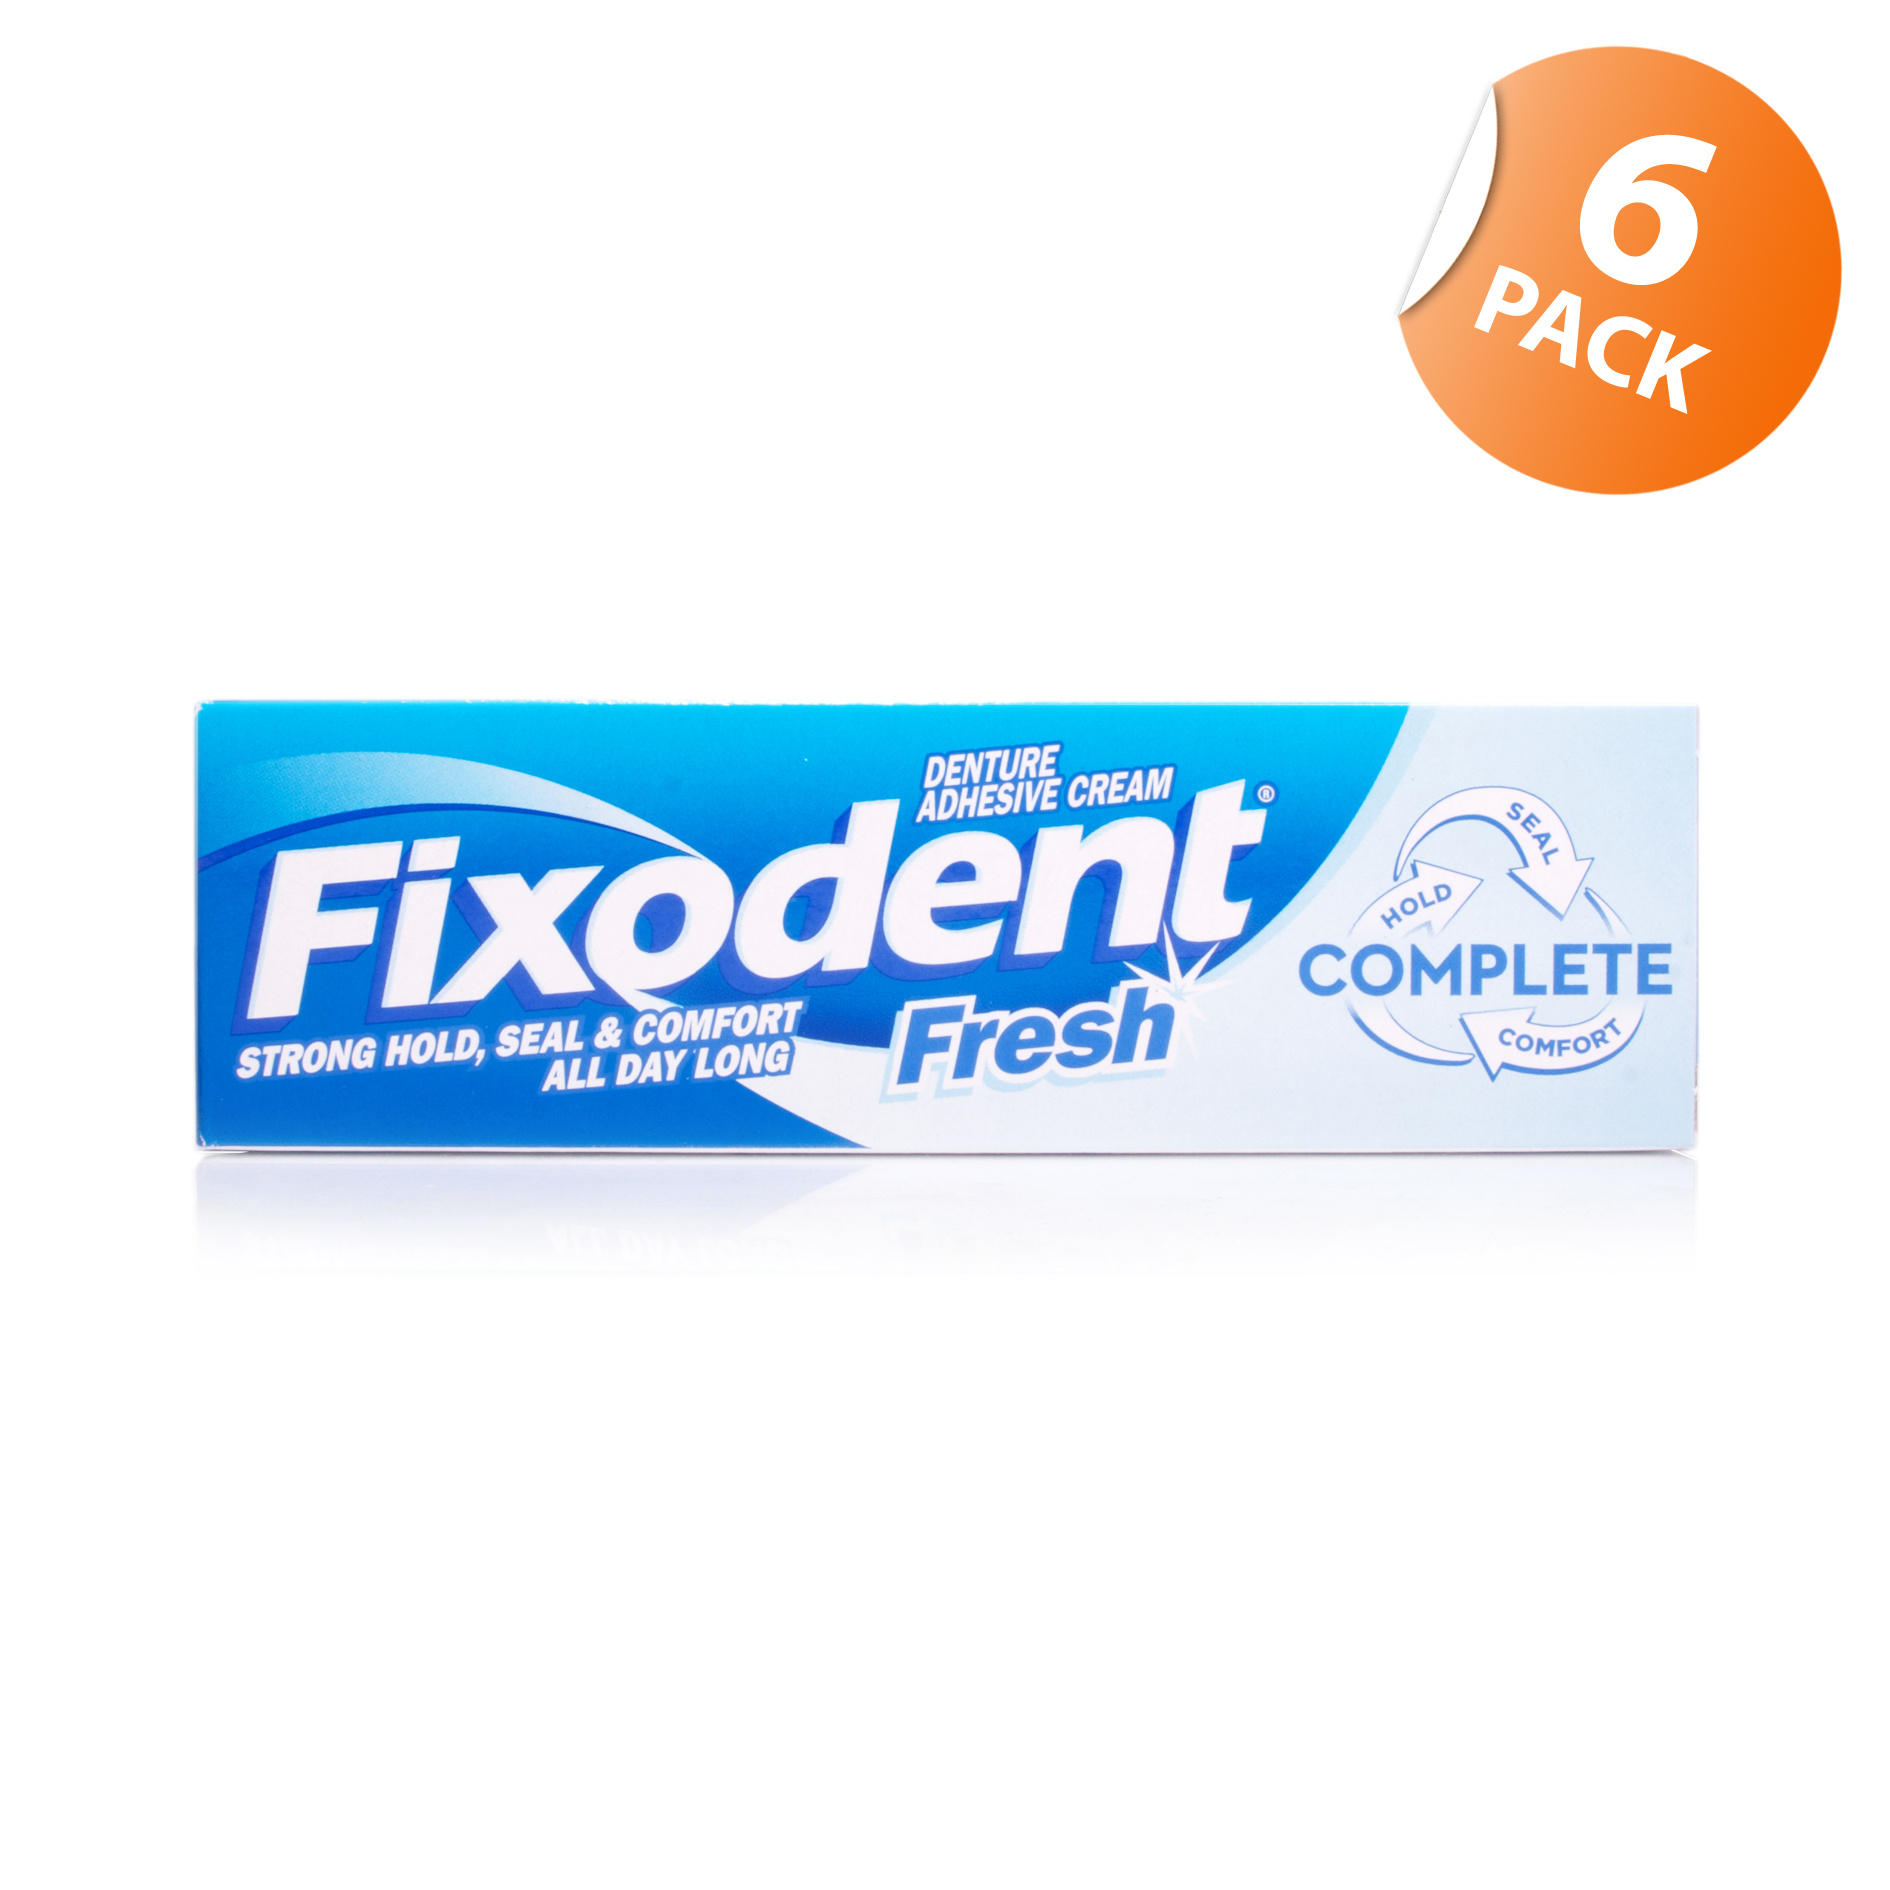 Fixodent Fresh Denture Adhesive Cream - 6 Pack